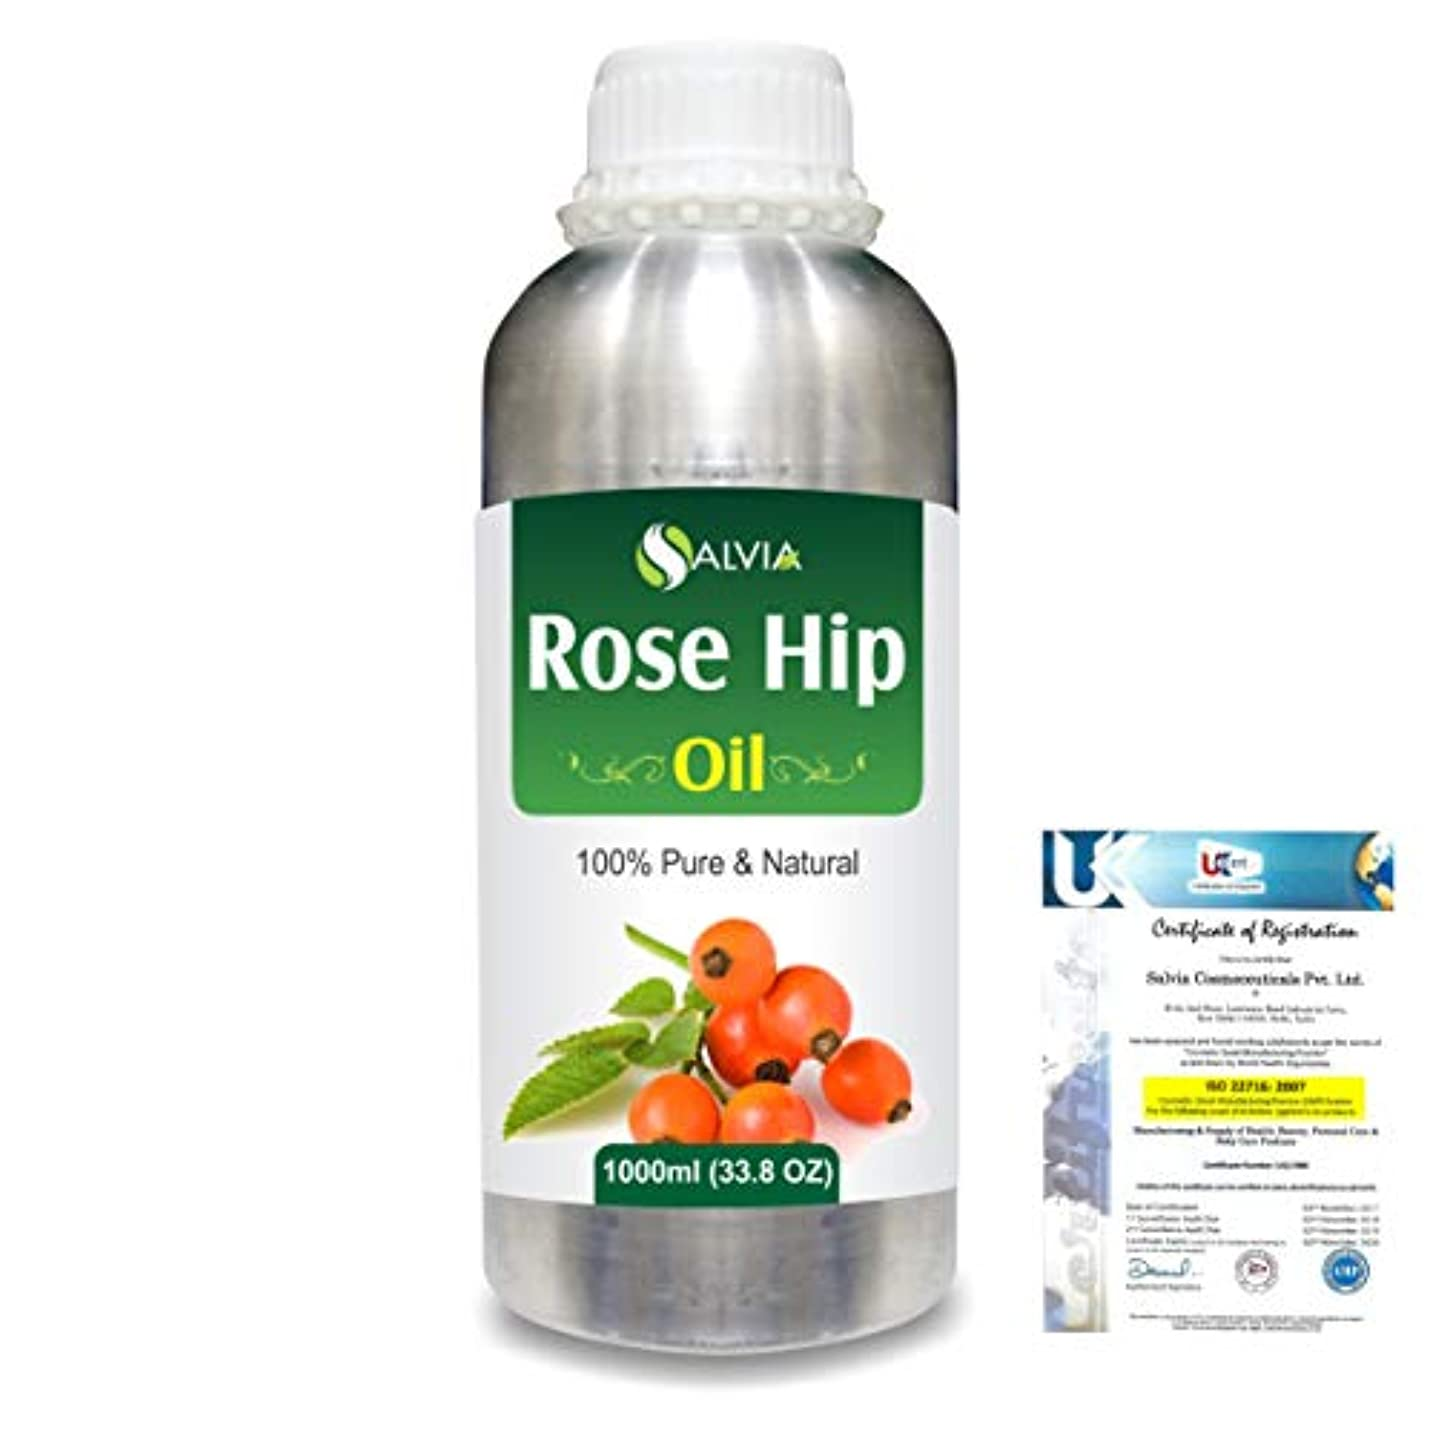 居眠りするグレートオーク南極Rose Hip (Rosa moschata) Natural Pure Undiluted Uncut Carrier Oil 1000ml/33.8 fl.oz.